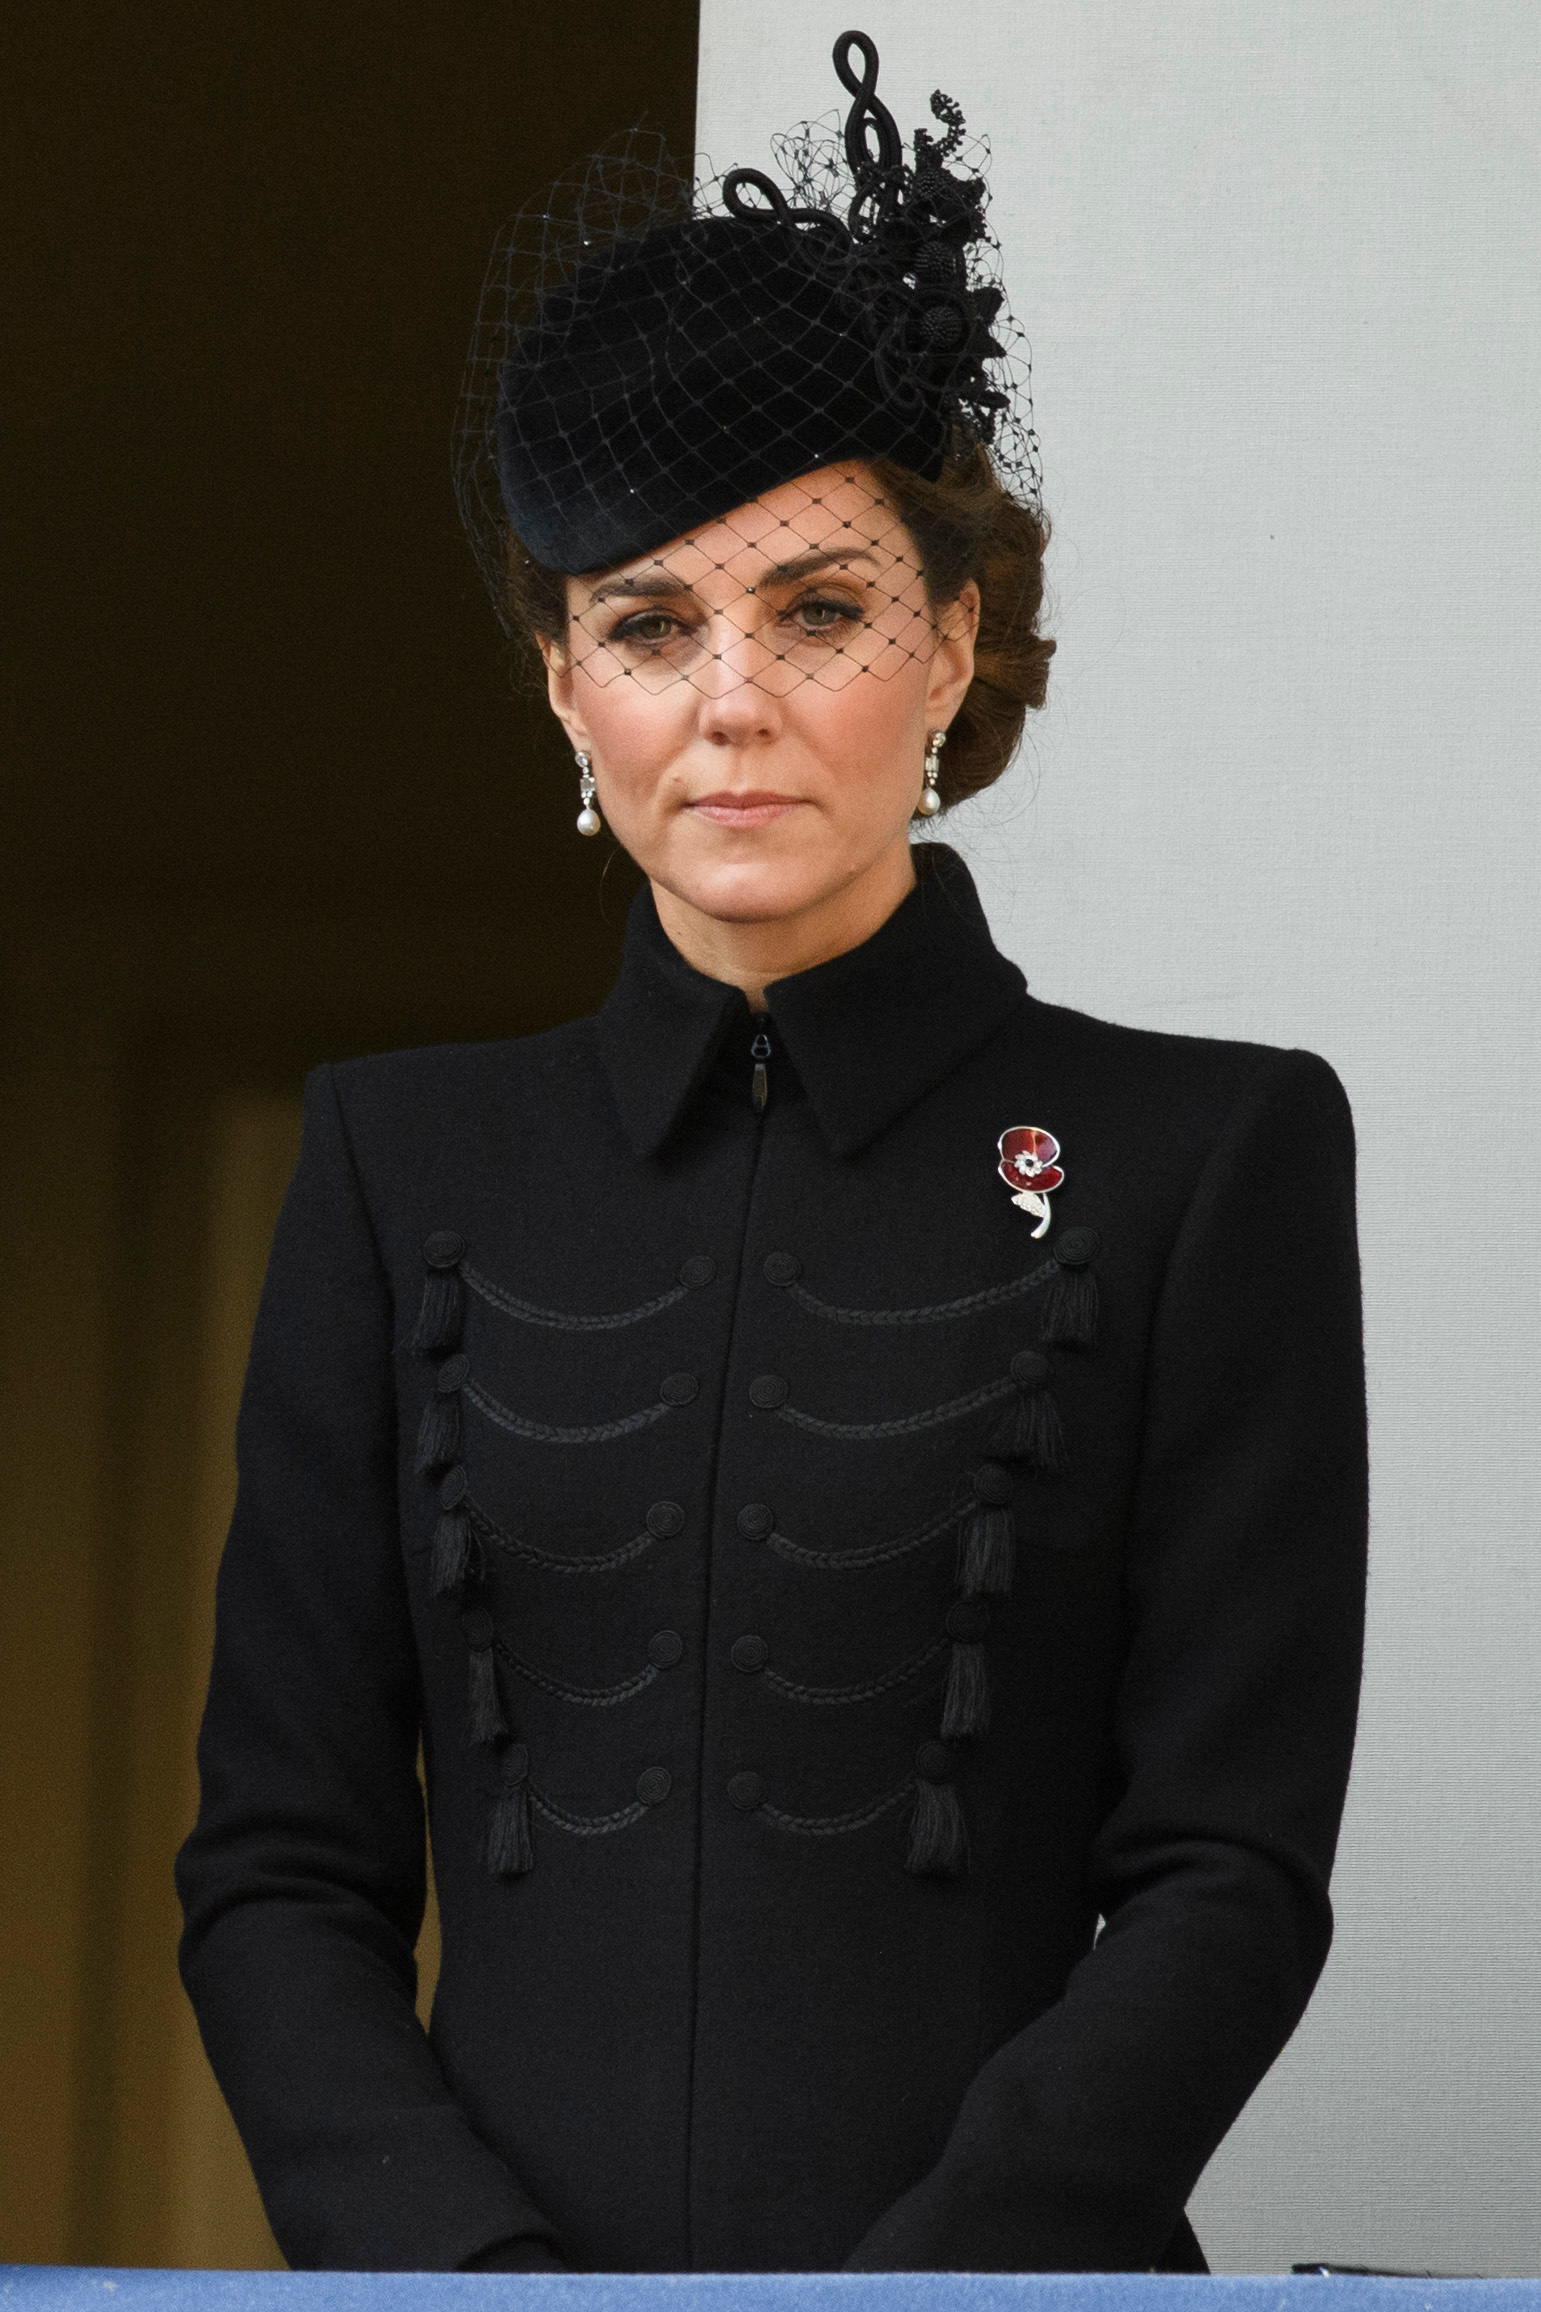 The British Royal Family Attends Remembrance Day Service 2019